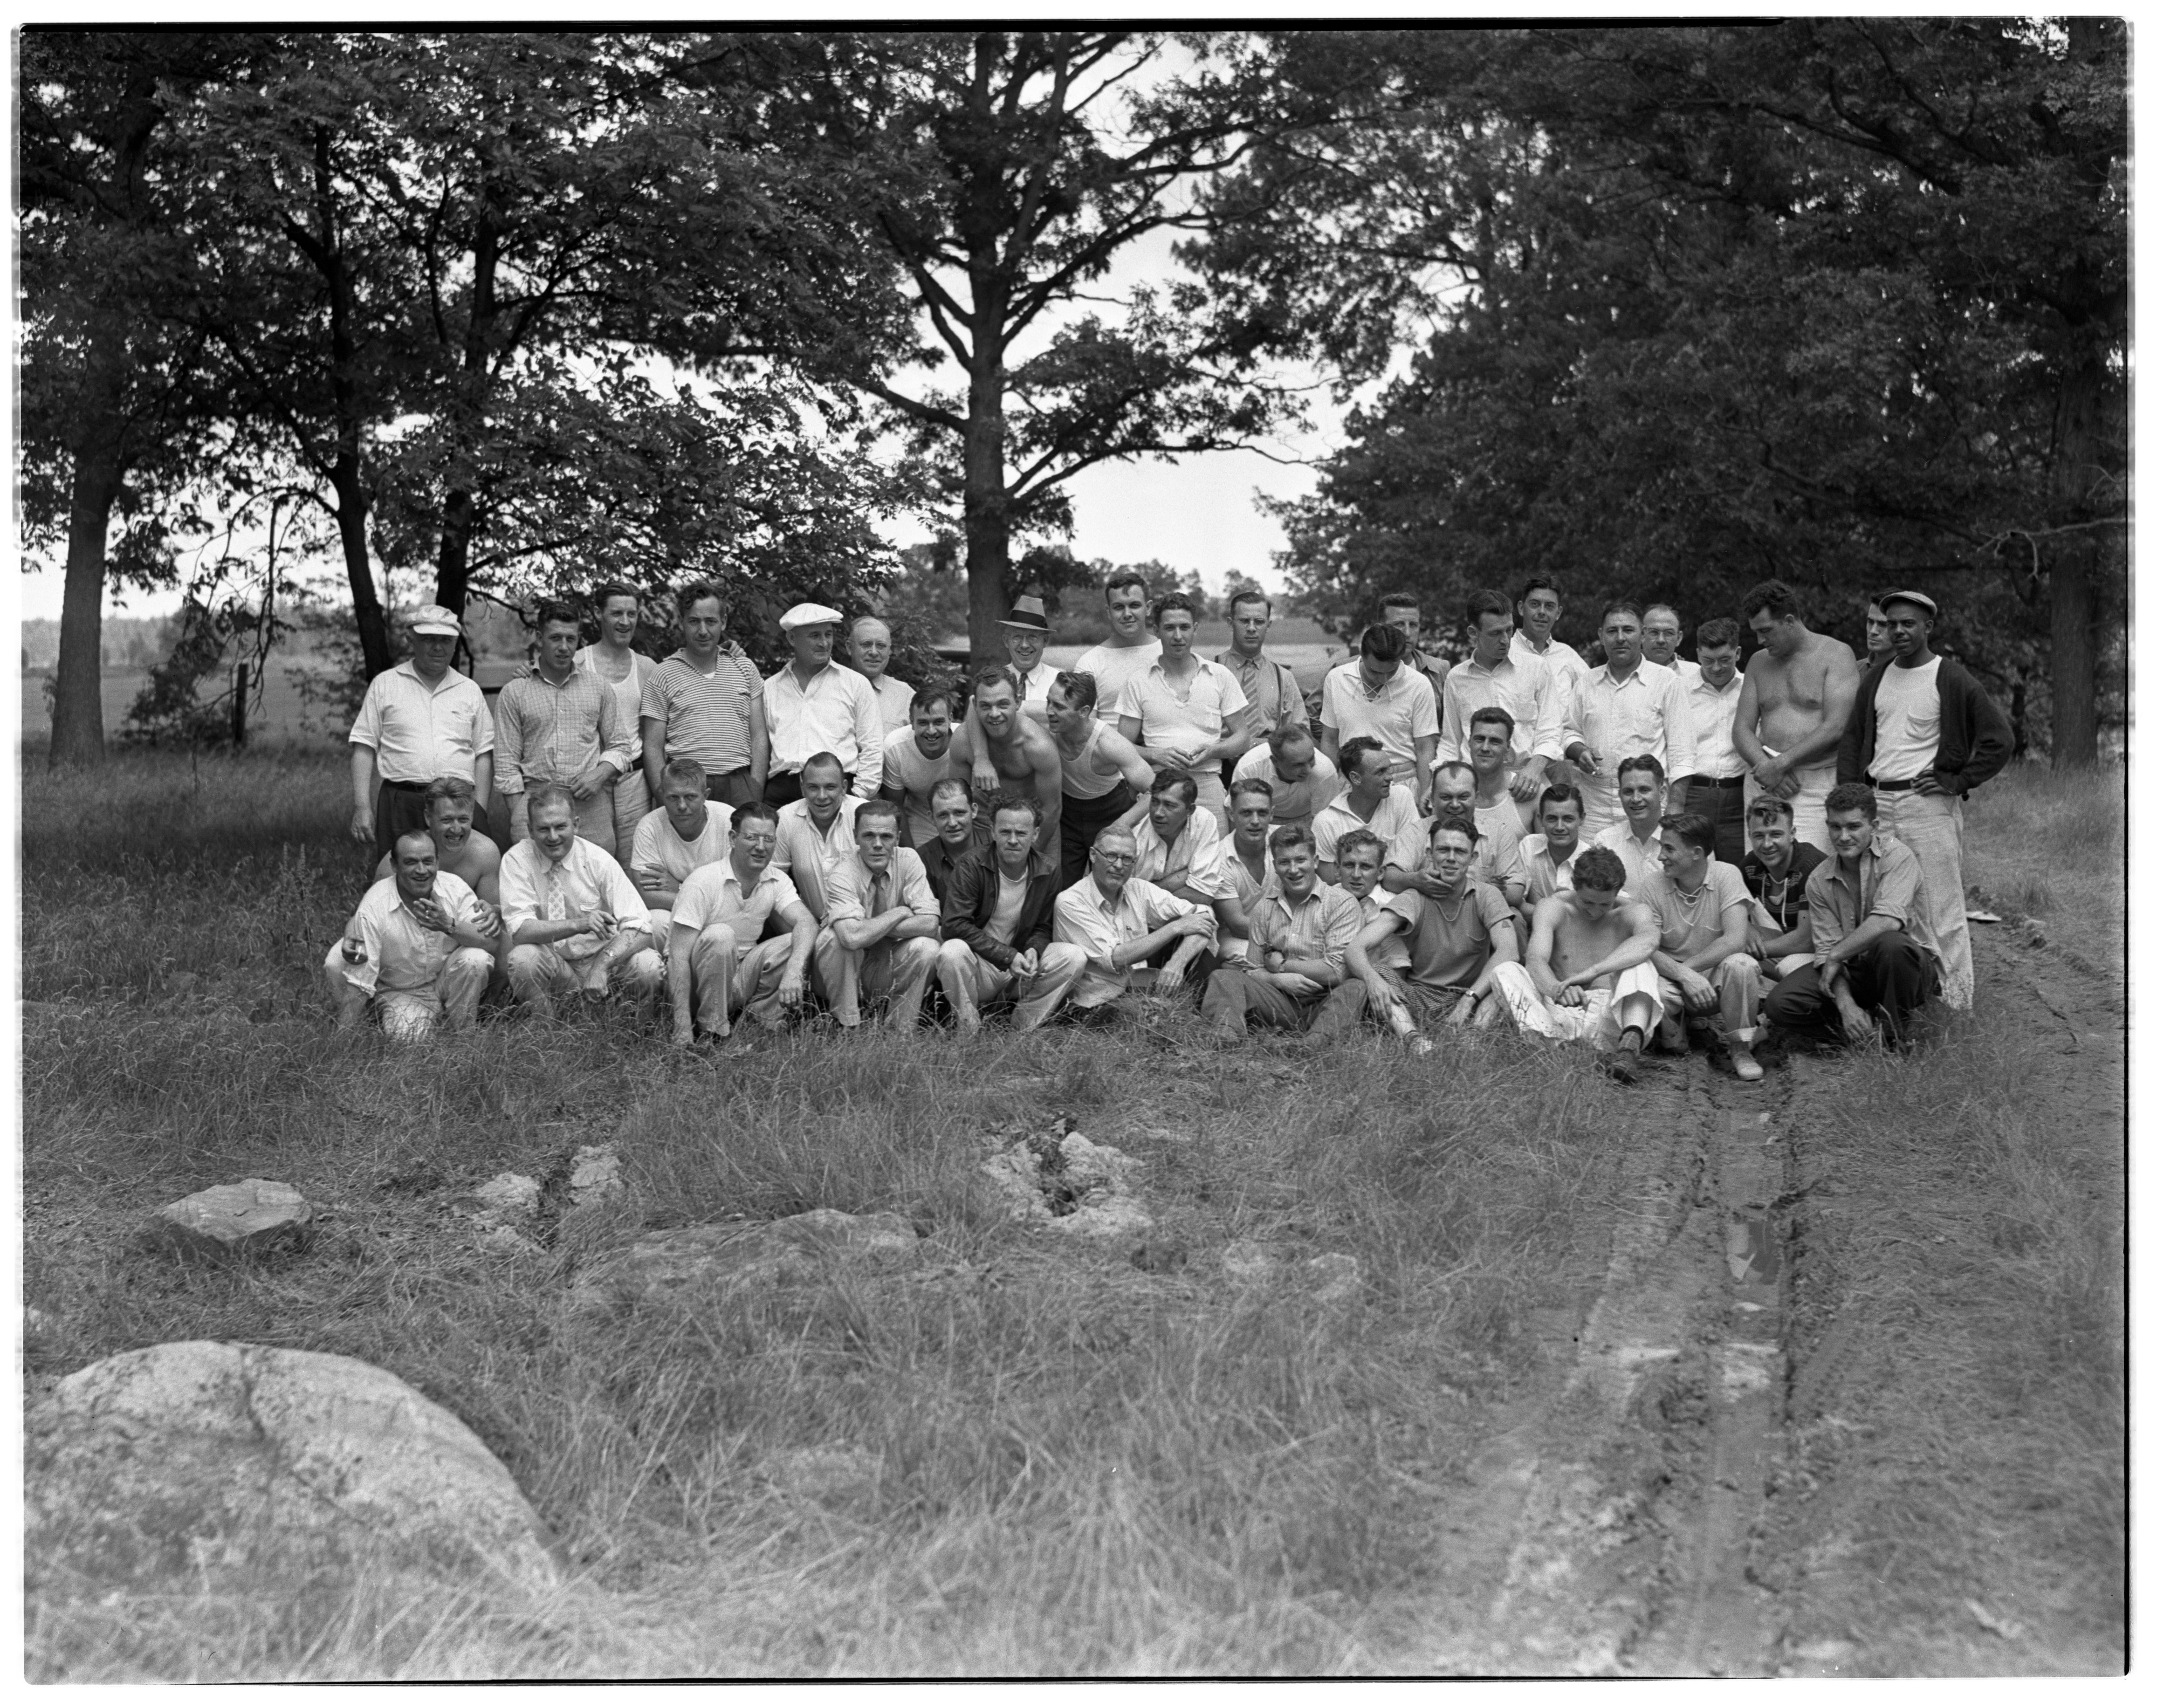 AA Club Picnic, June 27, 1937 image